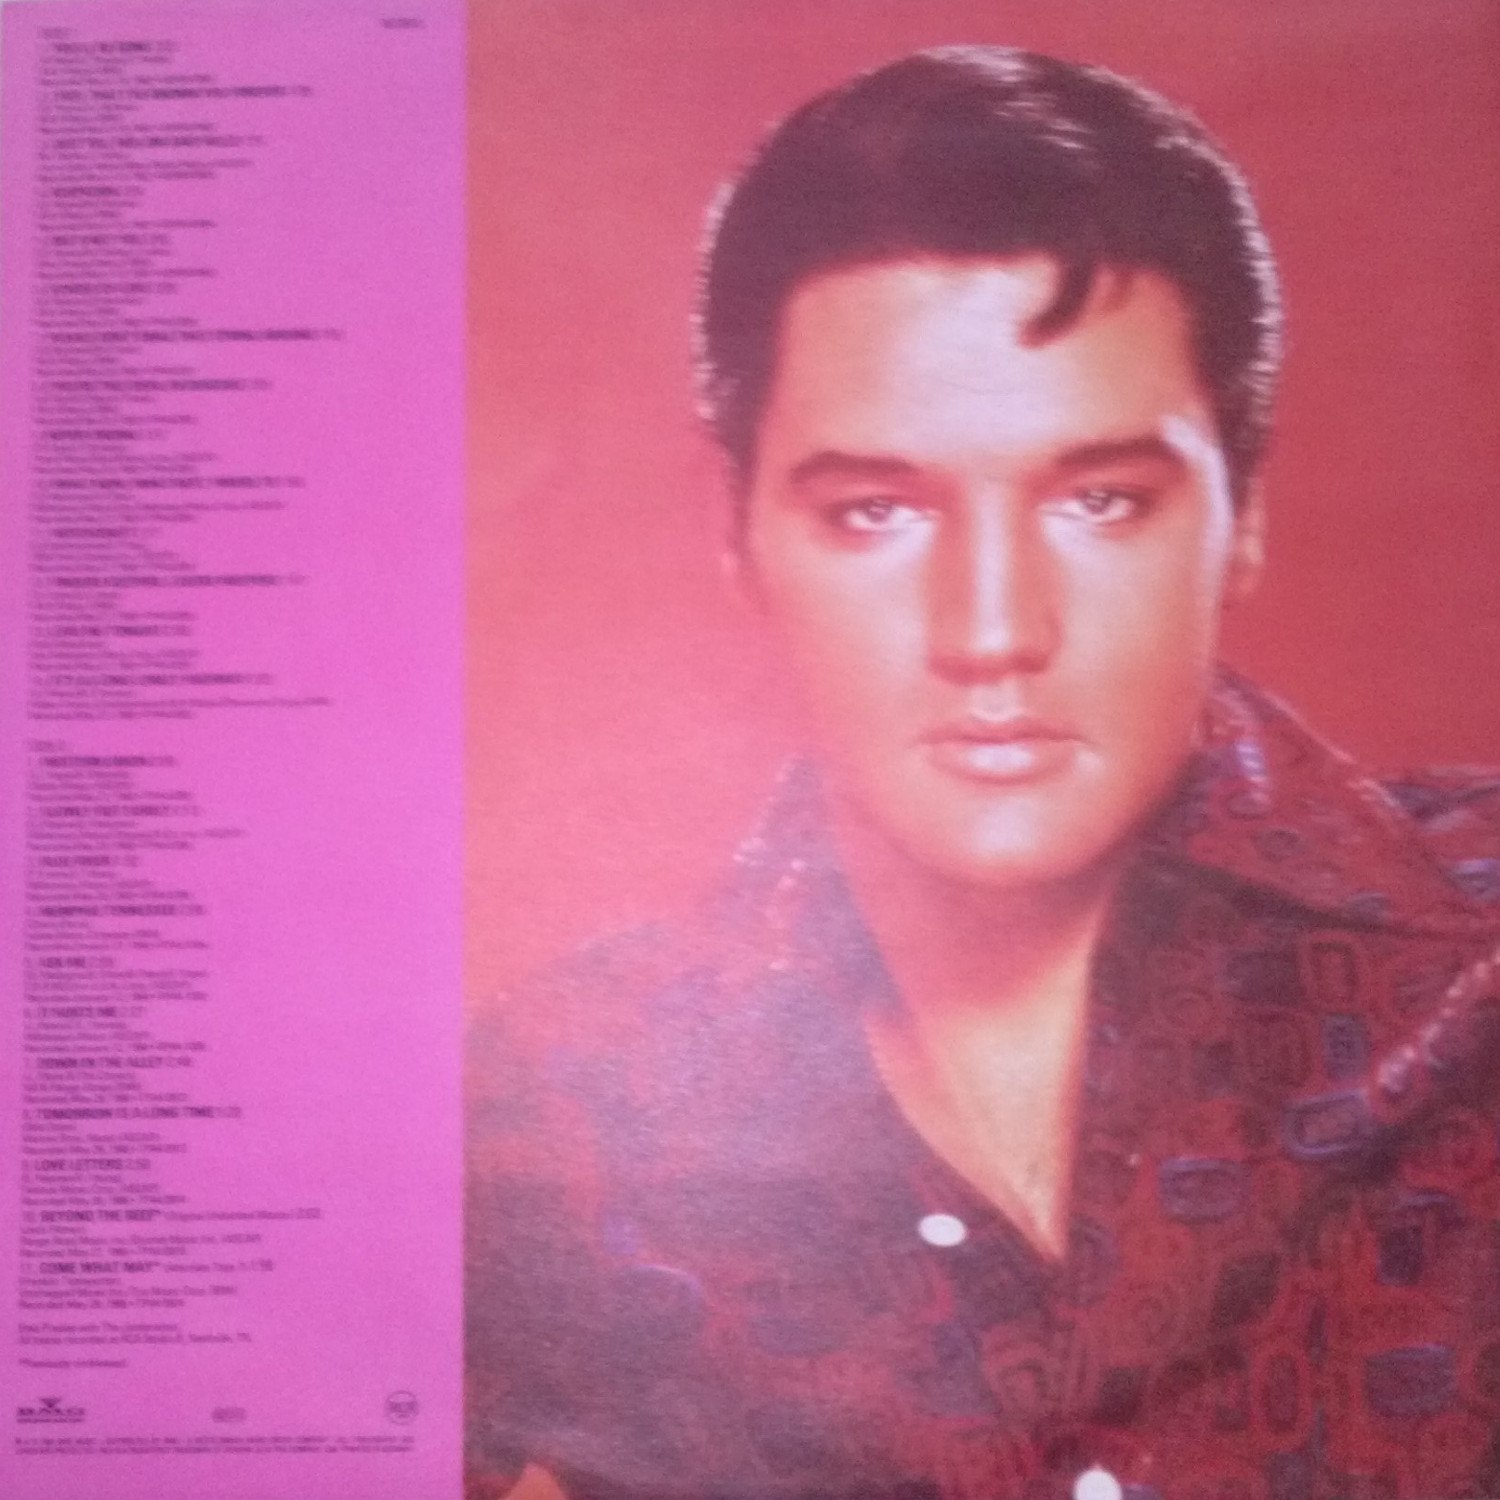 ELVIS - FROM NASHVILLE TO MEMPHIS - THE ESSENTIAL 60'S MASTERS Cam00105o5uu0